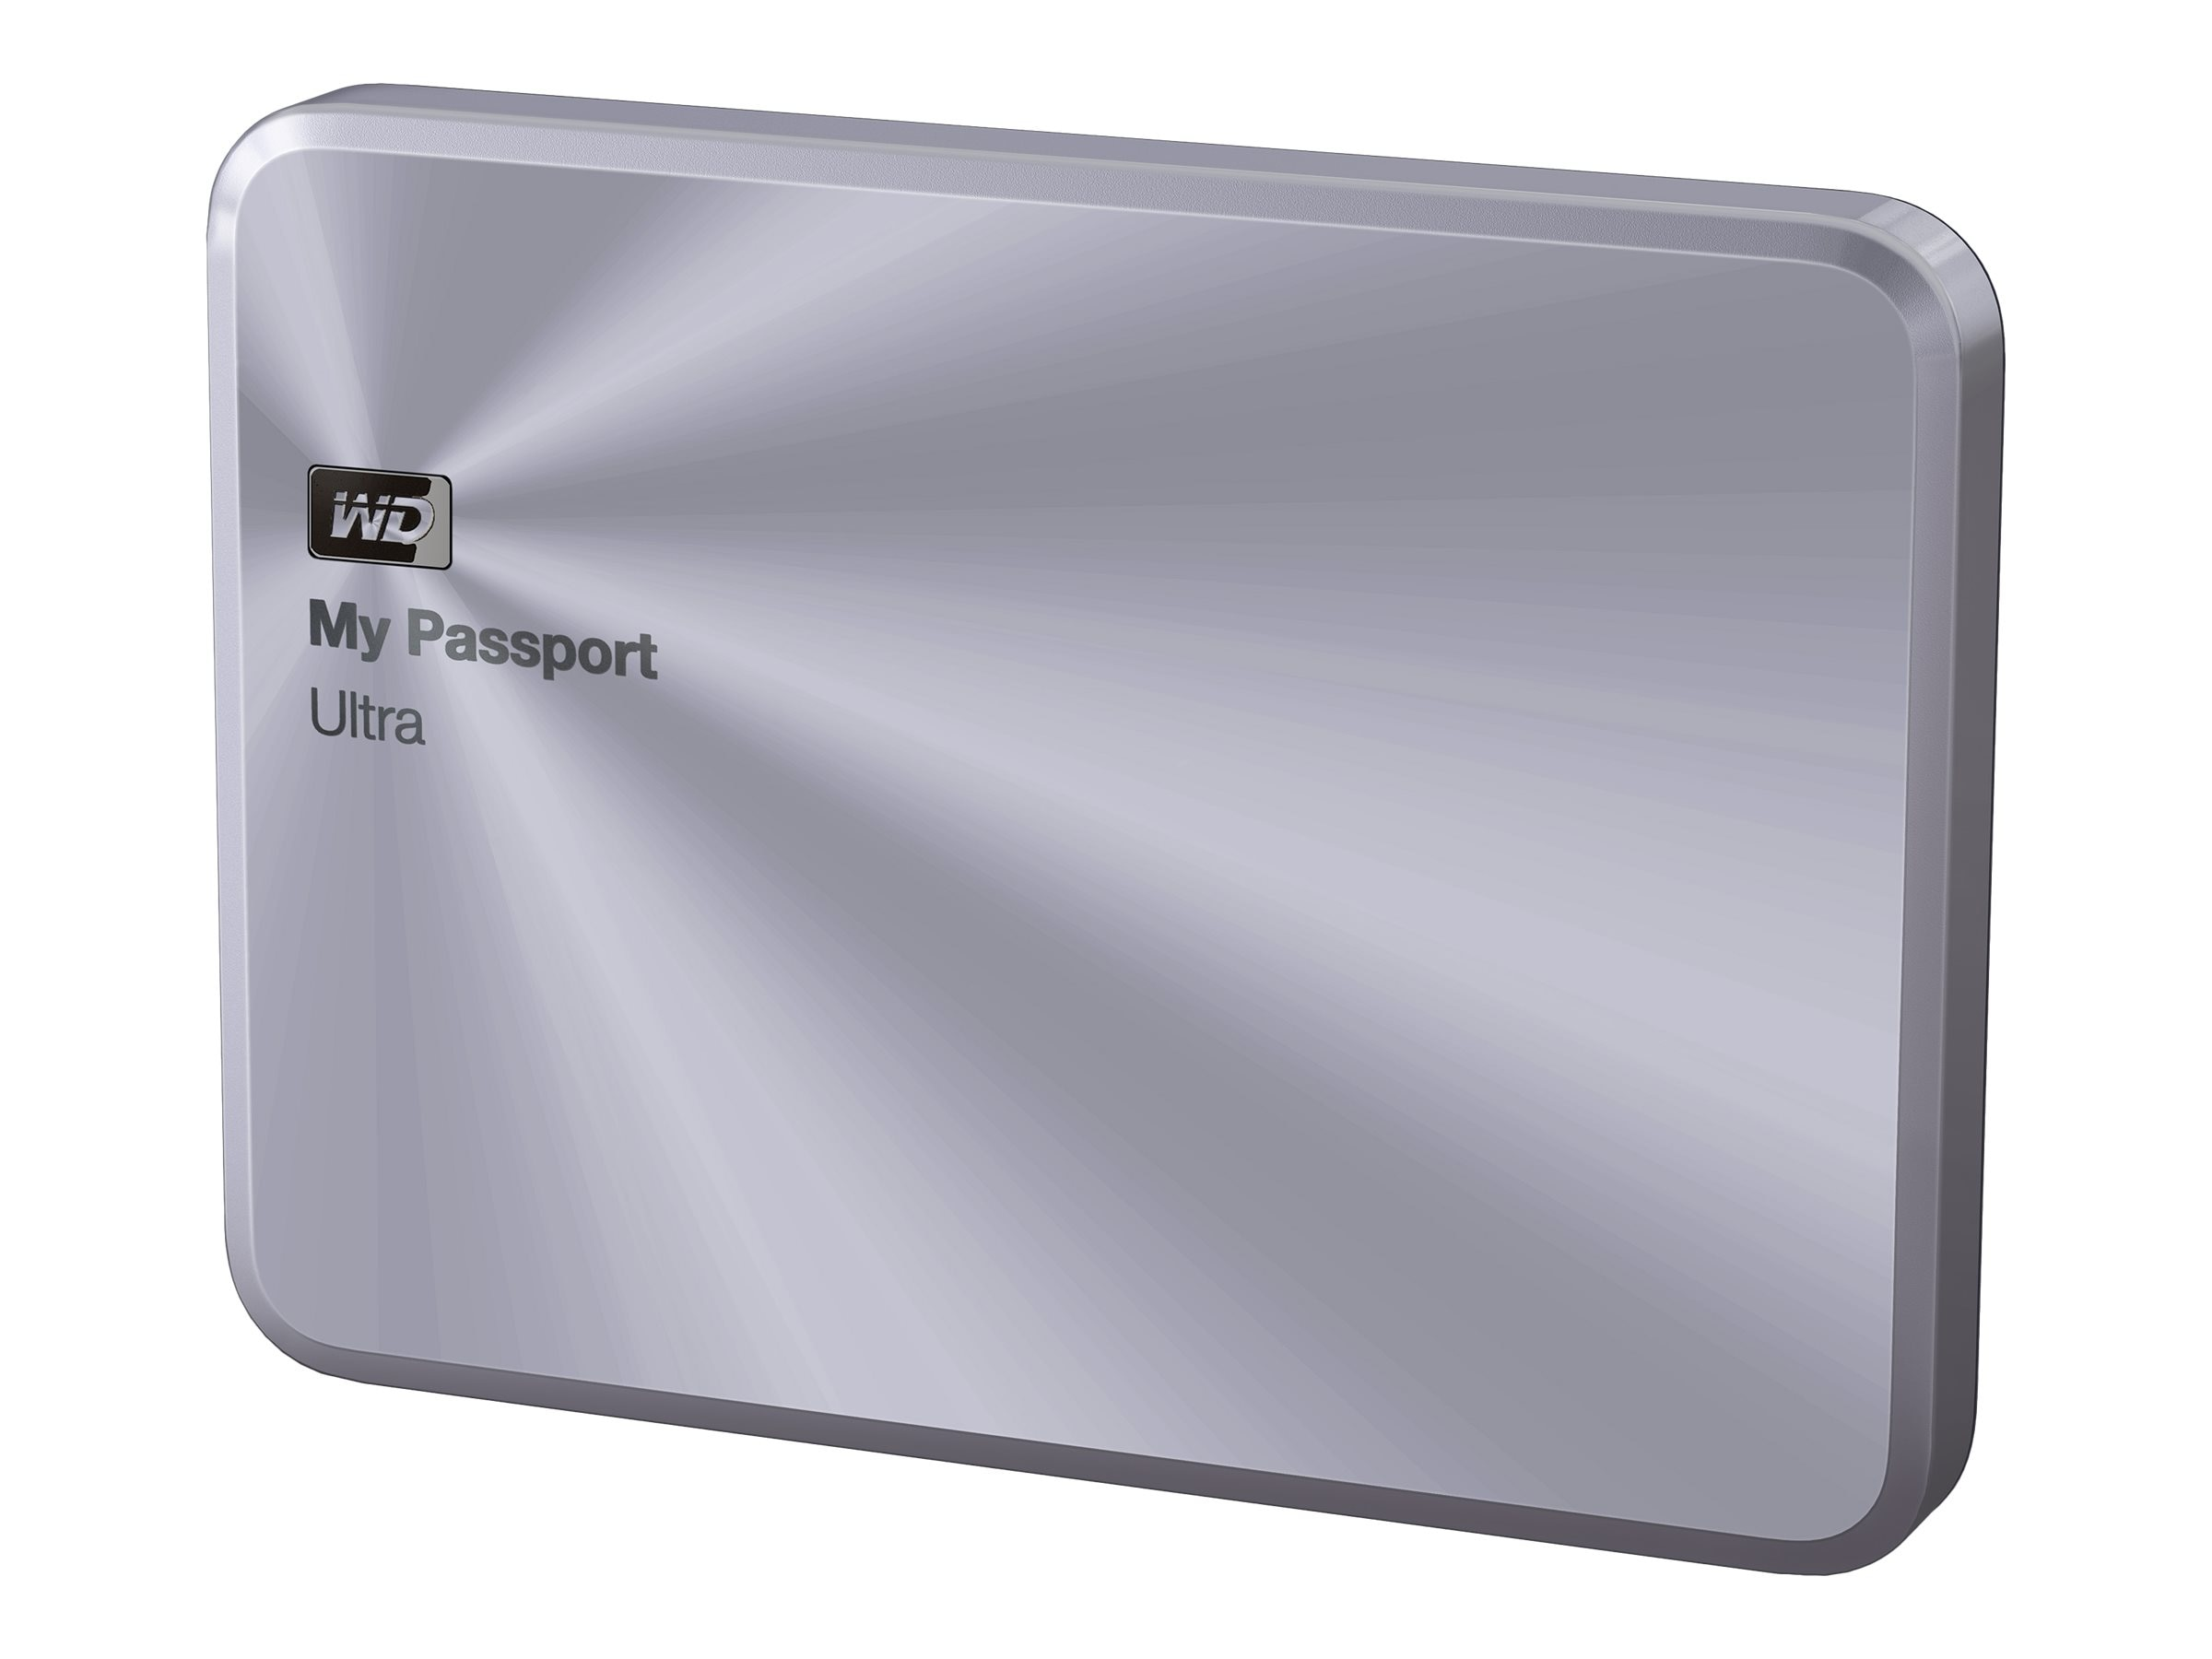 WD 3TB My Passport Ultra Metal Edition USB 3.0 Portable Hard Drive - Silver, WDBEZW0030BSL-NESN